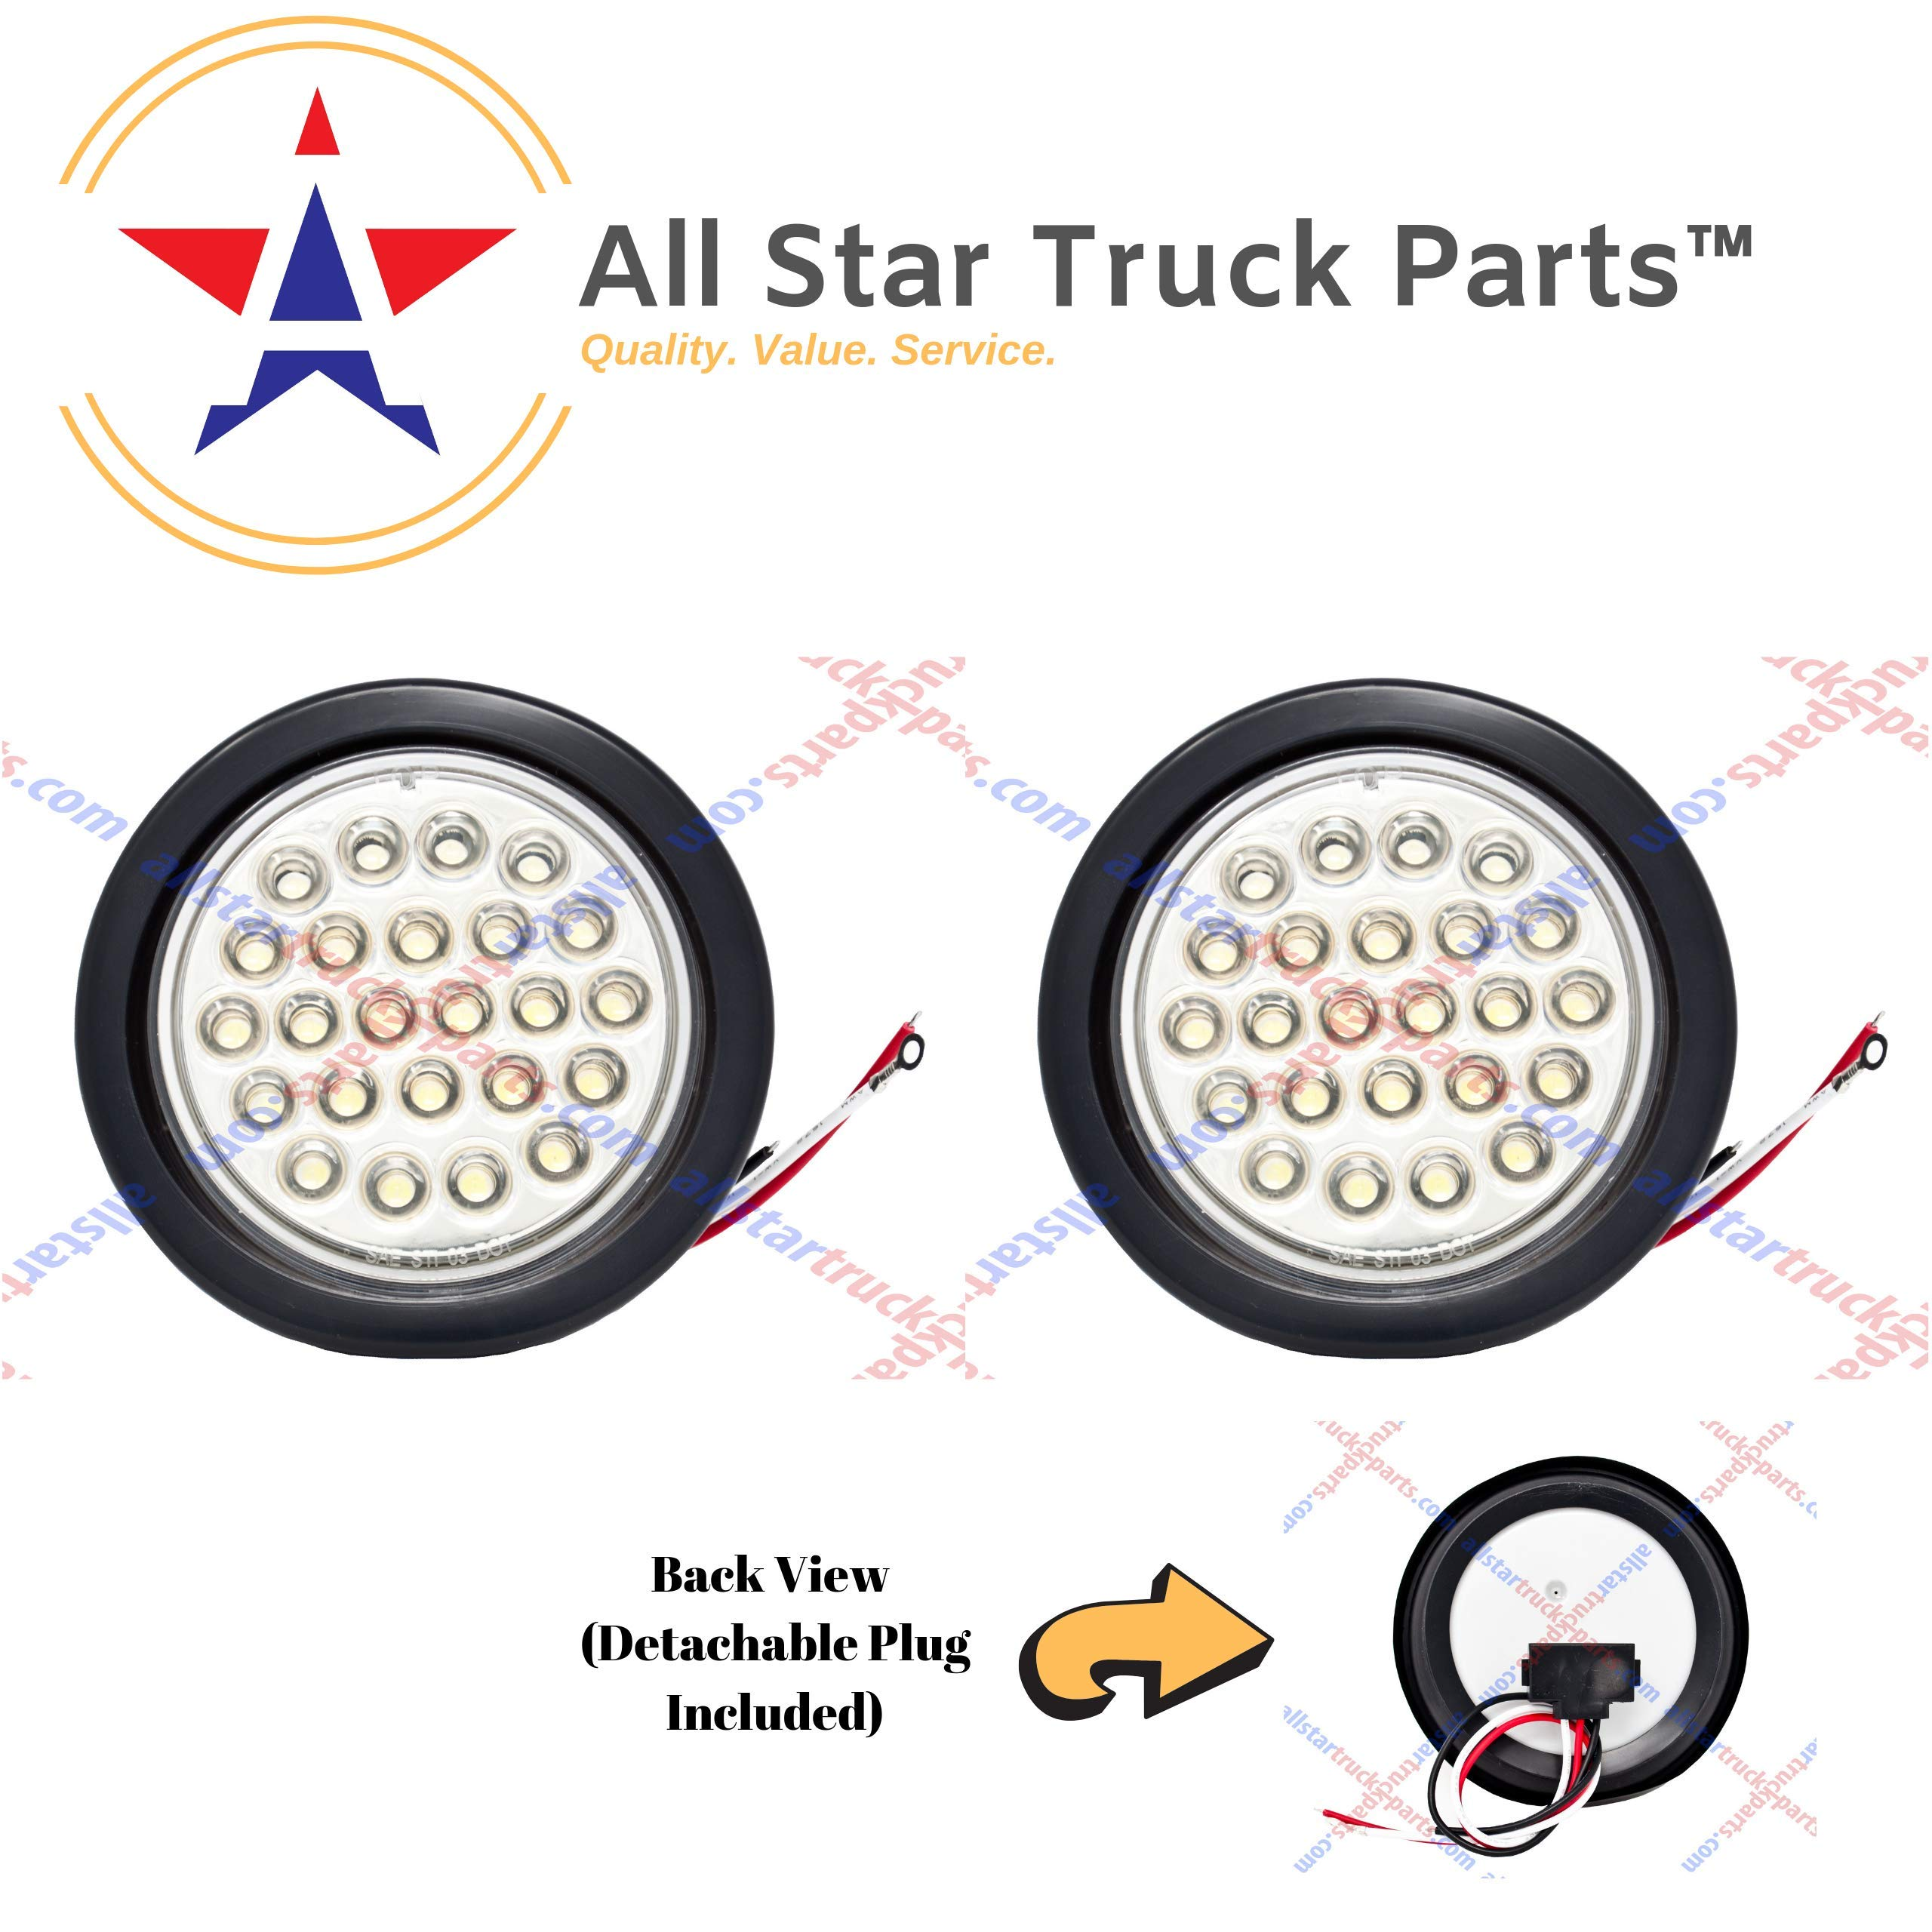 [ALL STAR TRUCK PARTS] 4'' Inch White 24 LED Round Reverse/Backup/Tail Trailer Light Kit with 3 wire Pigtail Plug & Grommet- Qty 2 by All Star Truck Parts